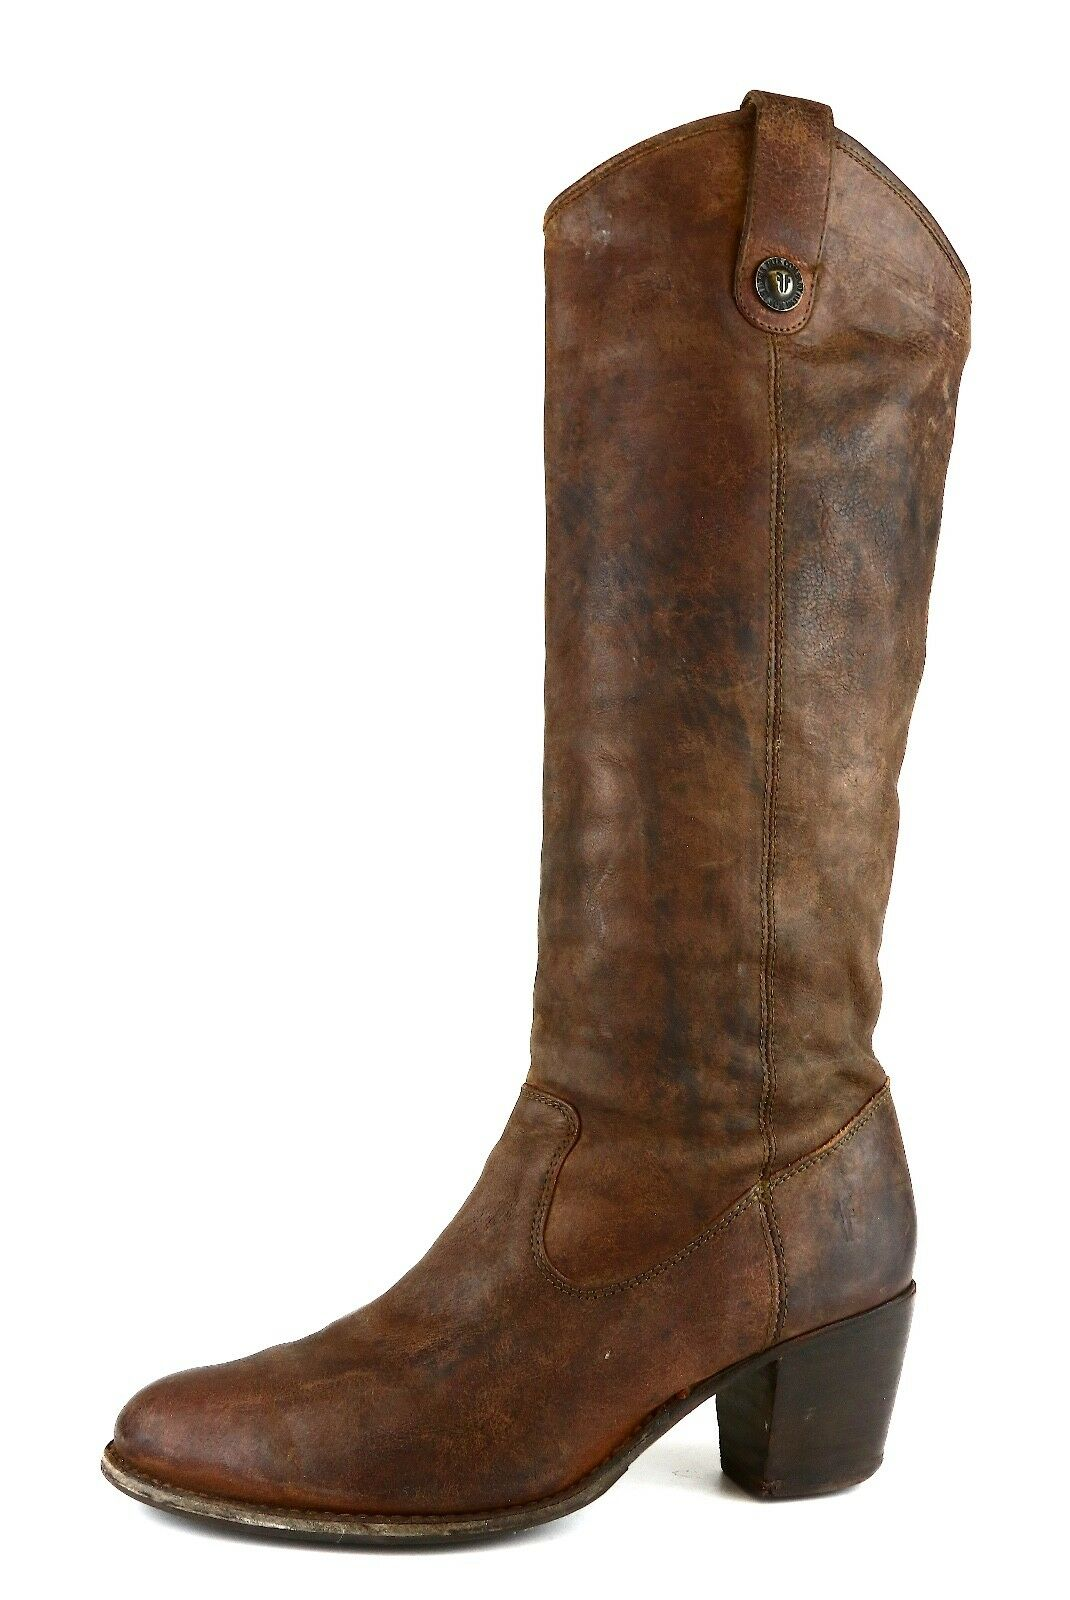 Frye Jackie Butto Leather Boot Brown Women Sz 9.5 B 5620 *